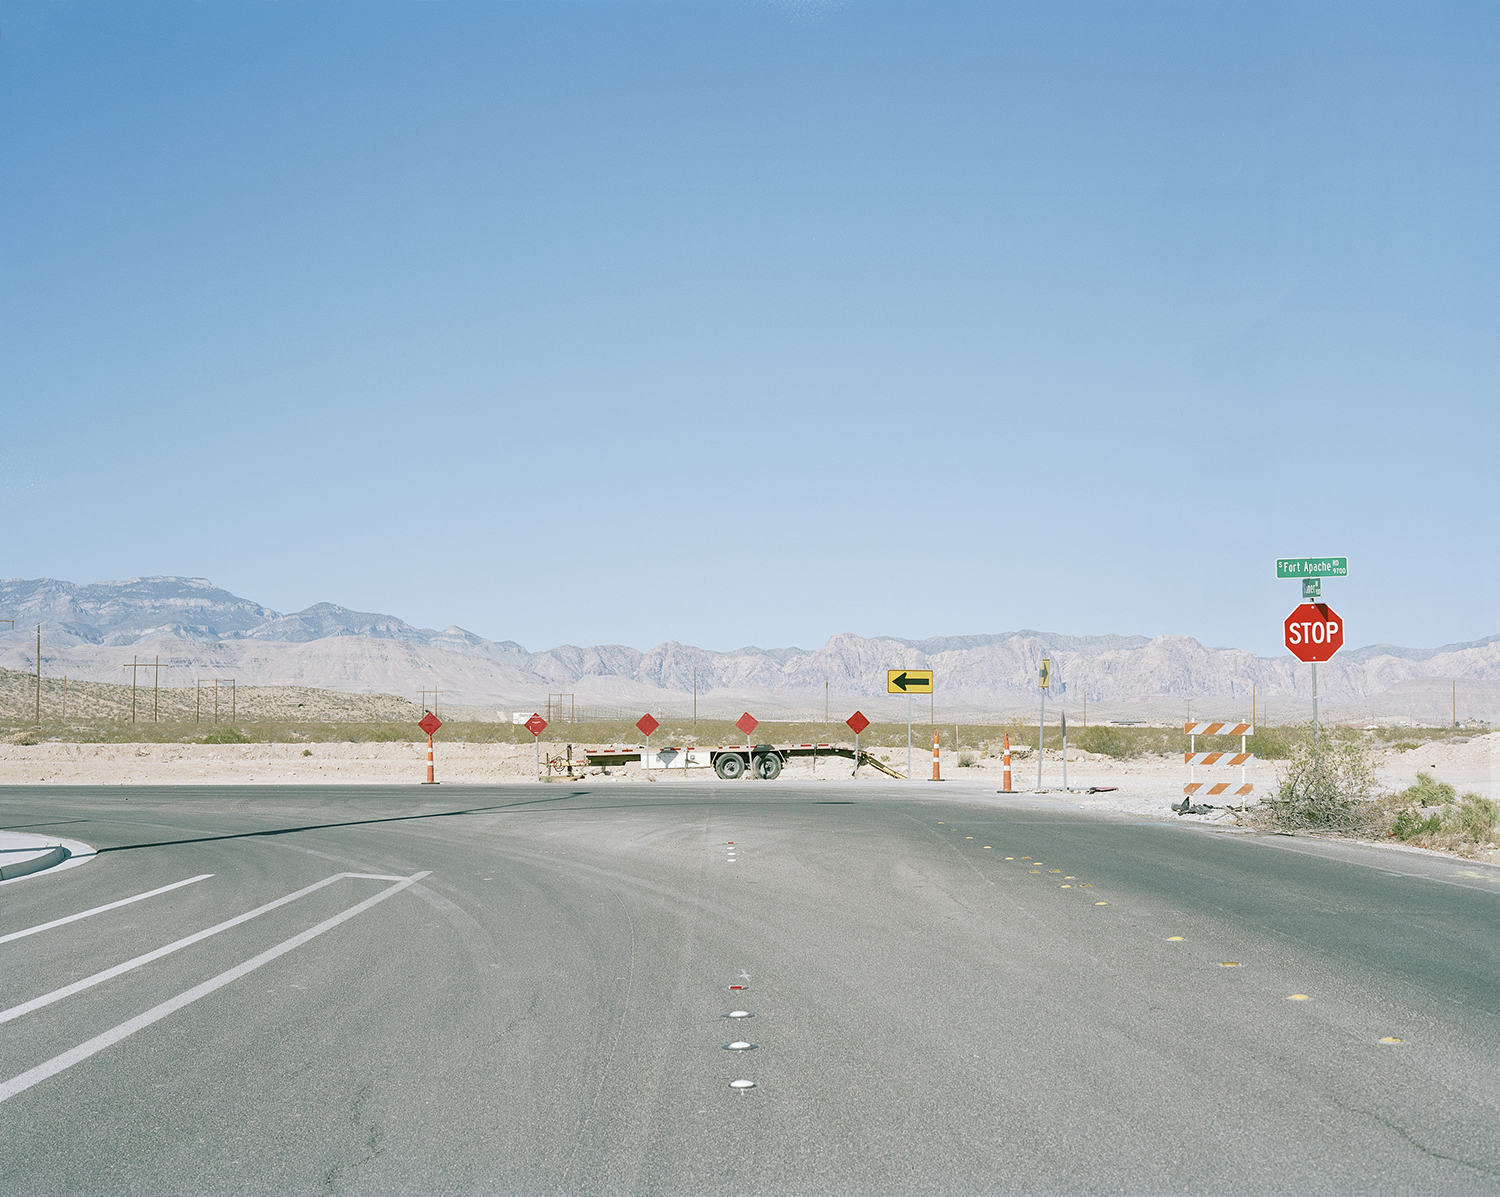 Fort Apache, Sage Canyon, Las Vegas  from the series   What makes grass grow in the desert